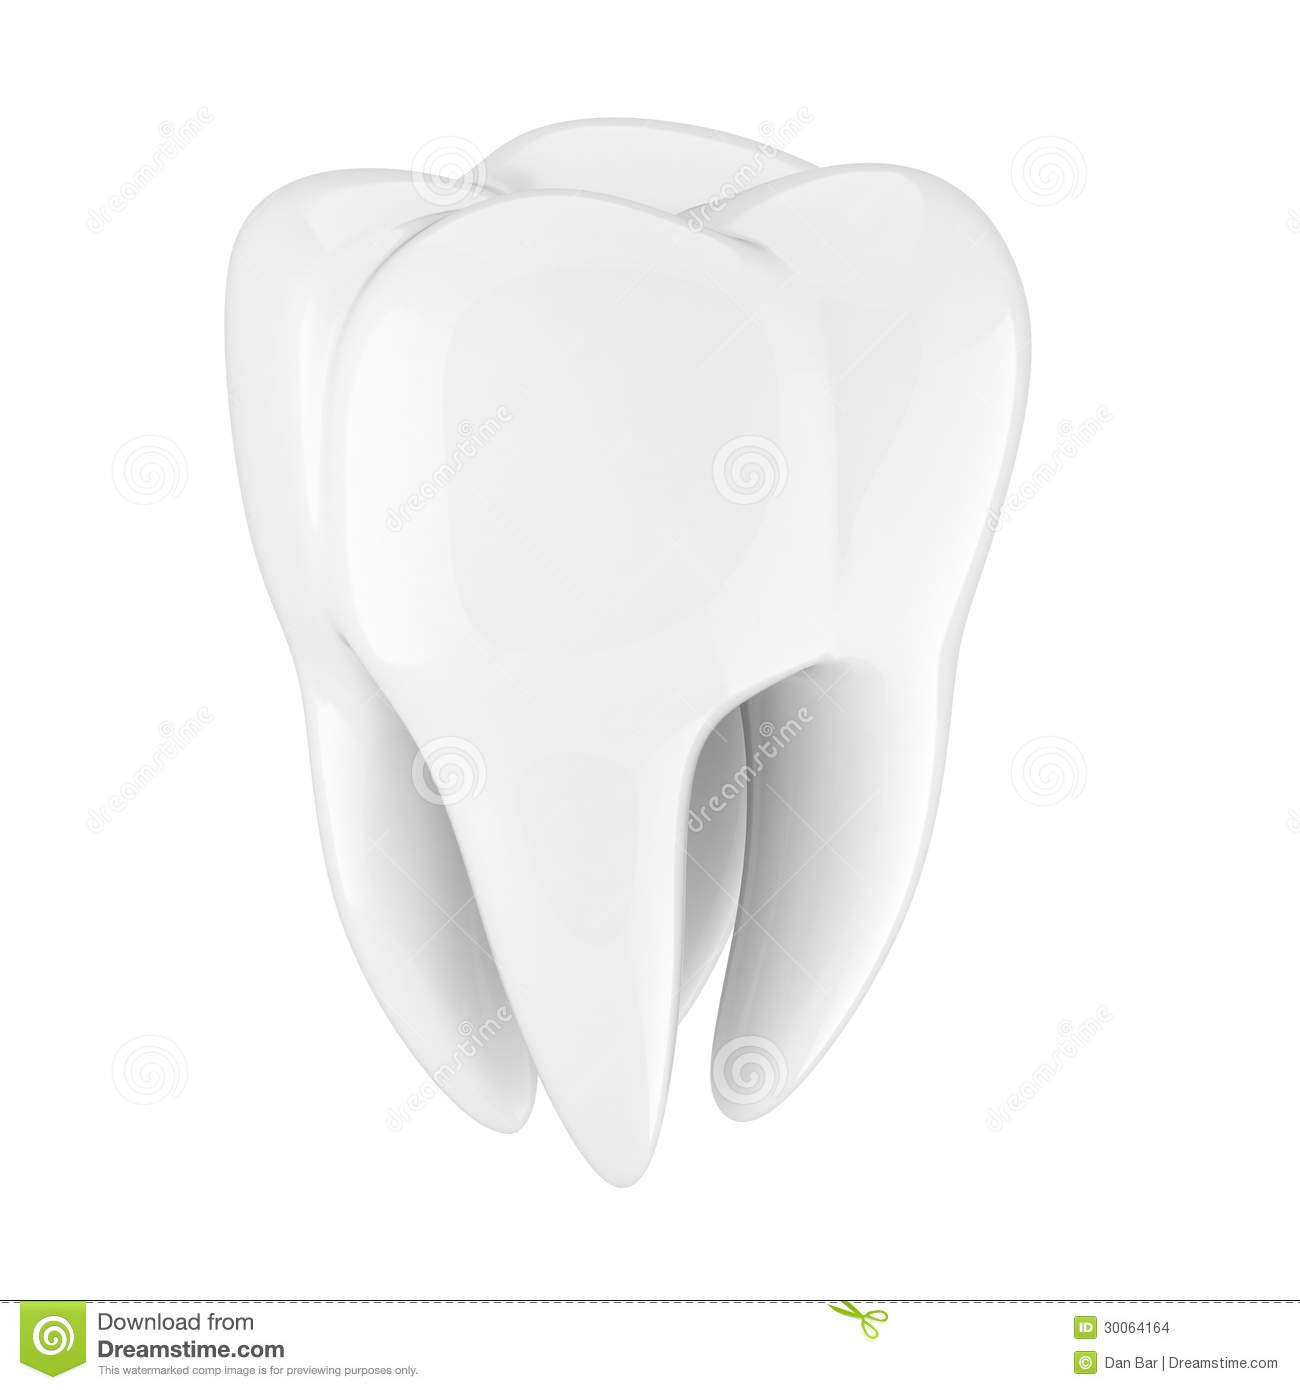 Dent 3d illustration stock illustration du isolement - Dessin de dent ...